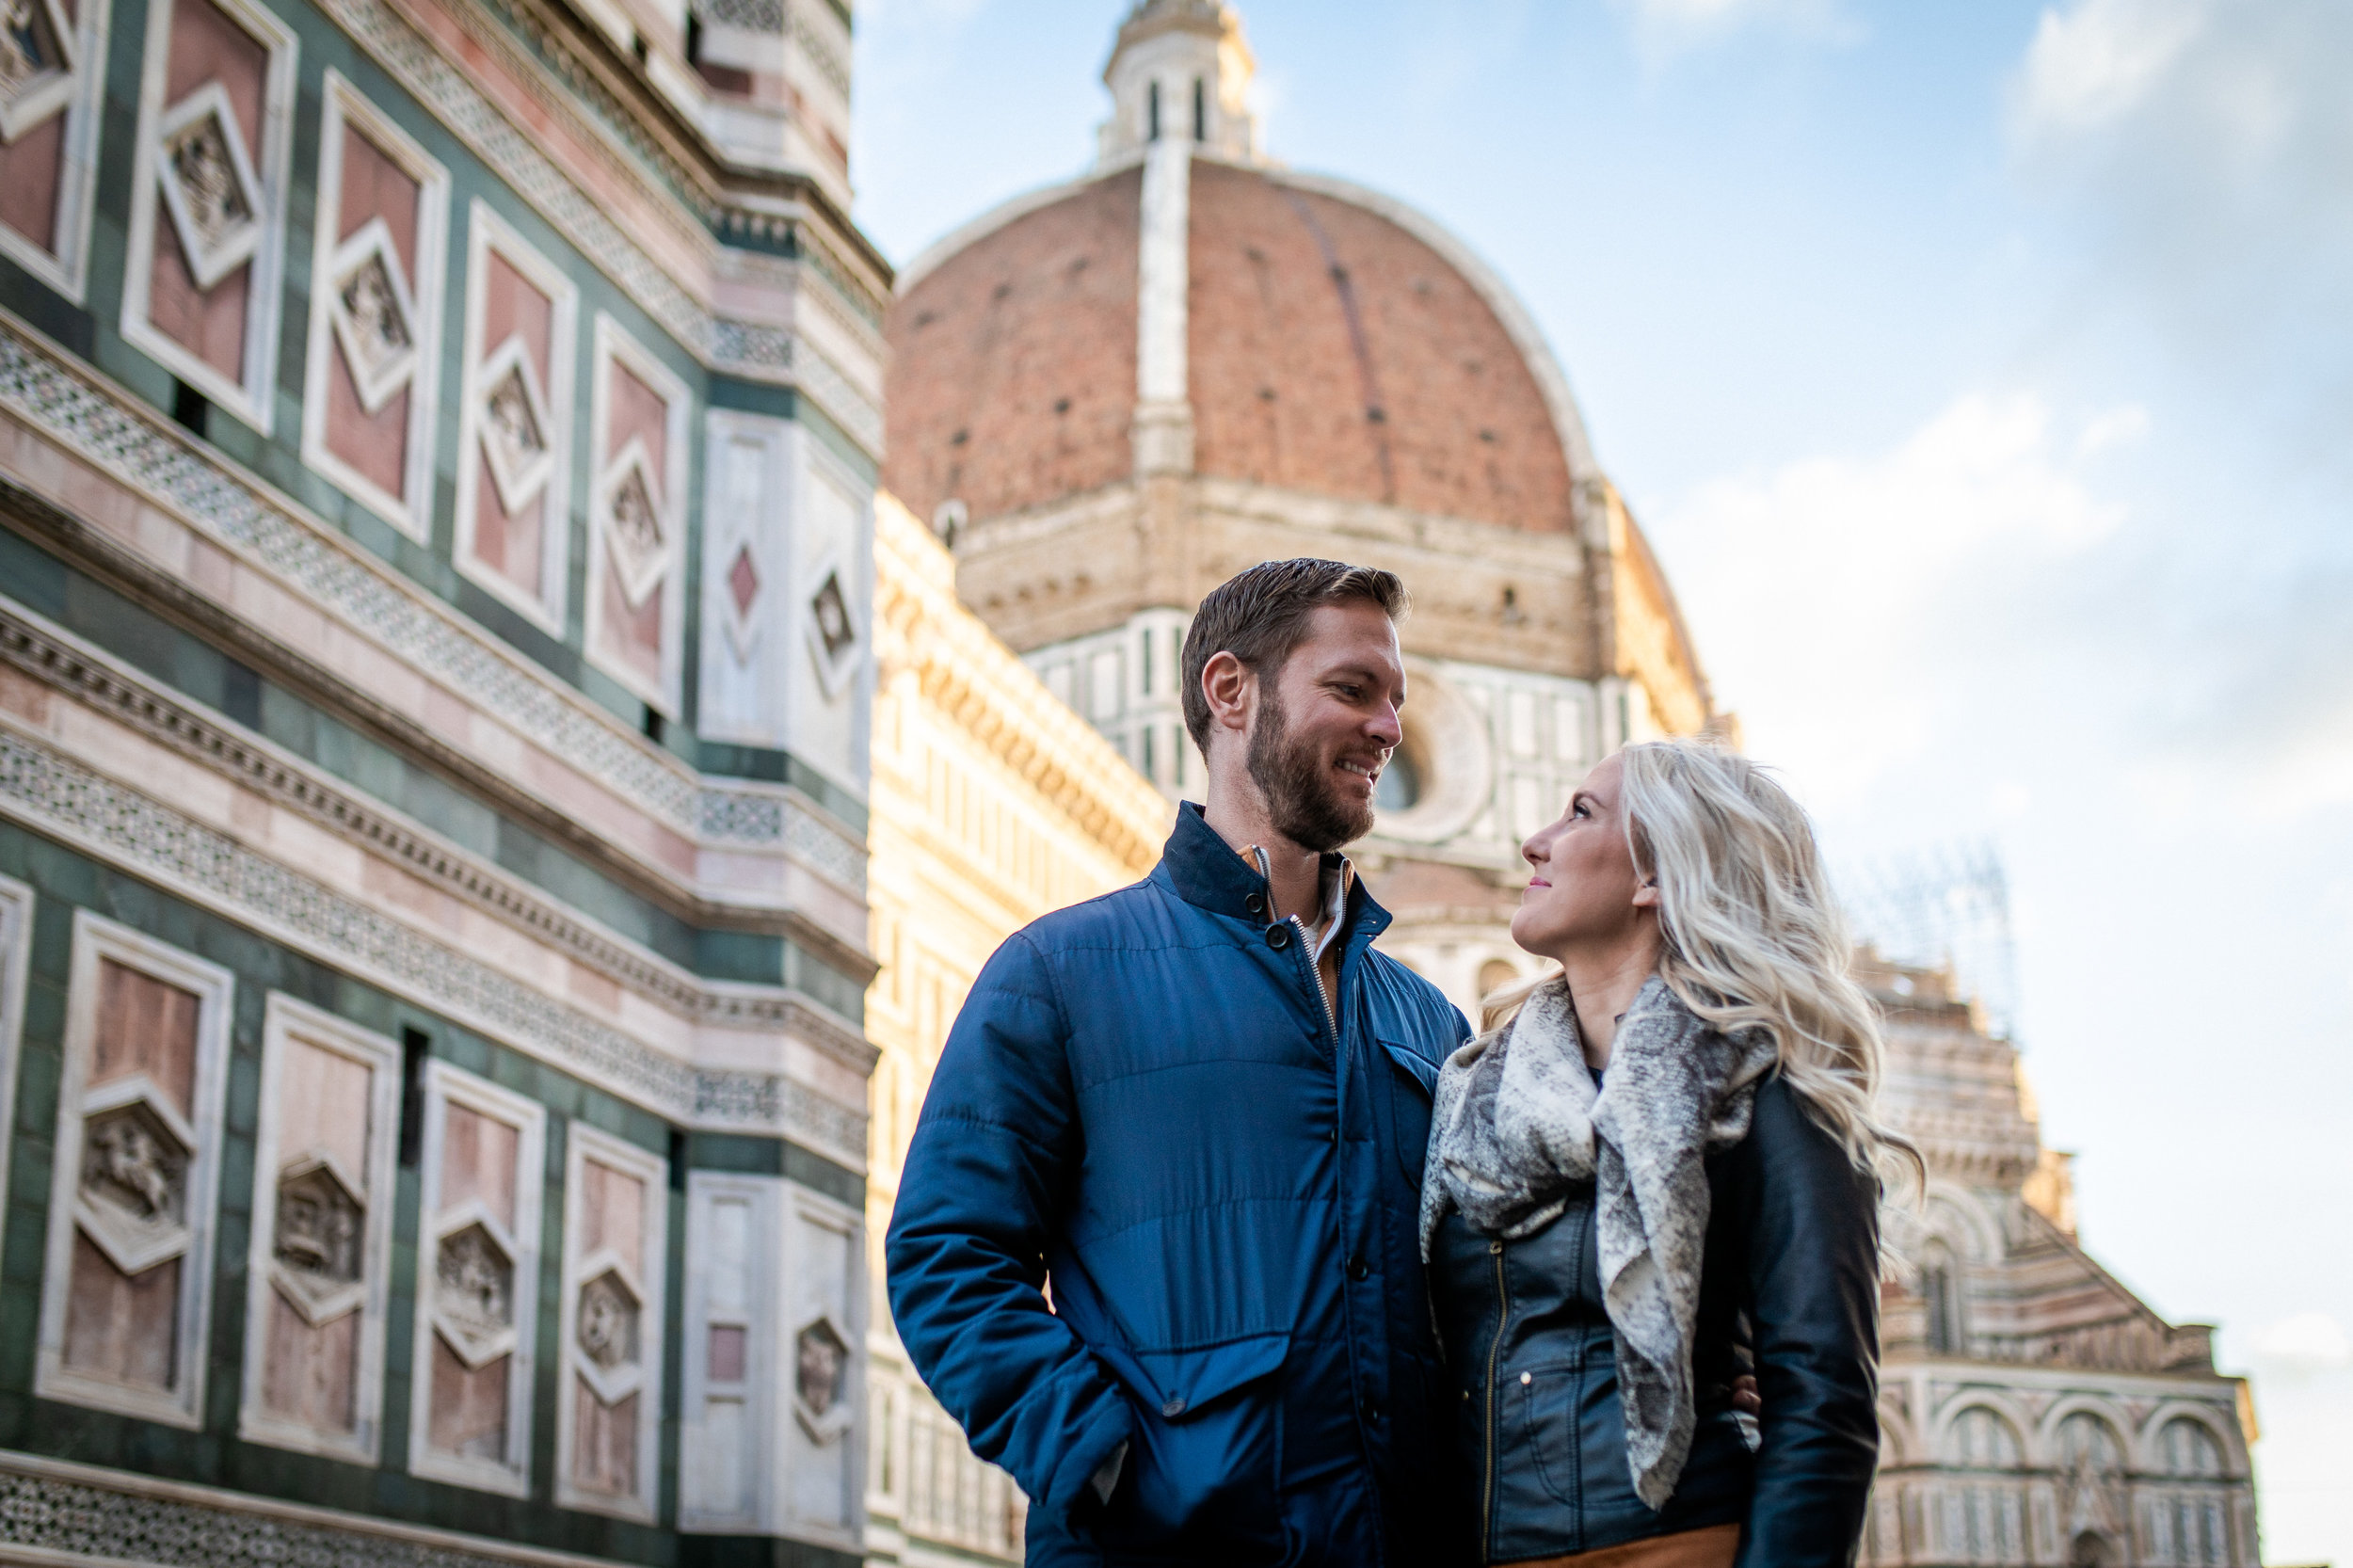 Photo by: Shoot My Travel Photographer Lauren in Florence